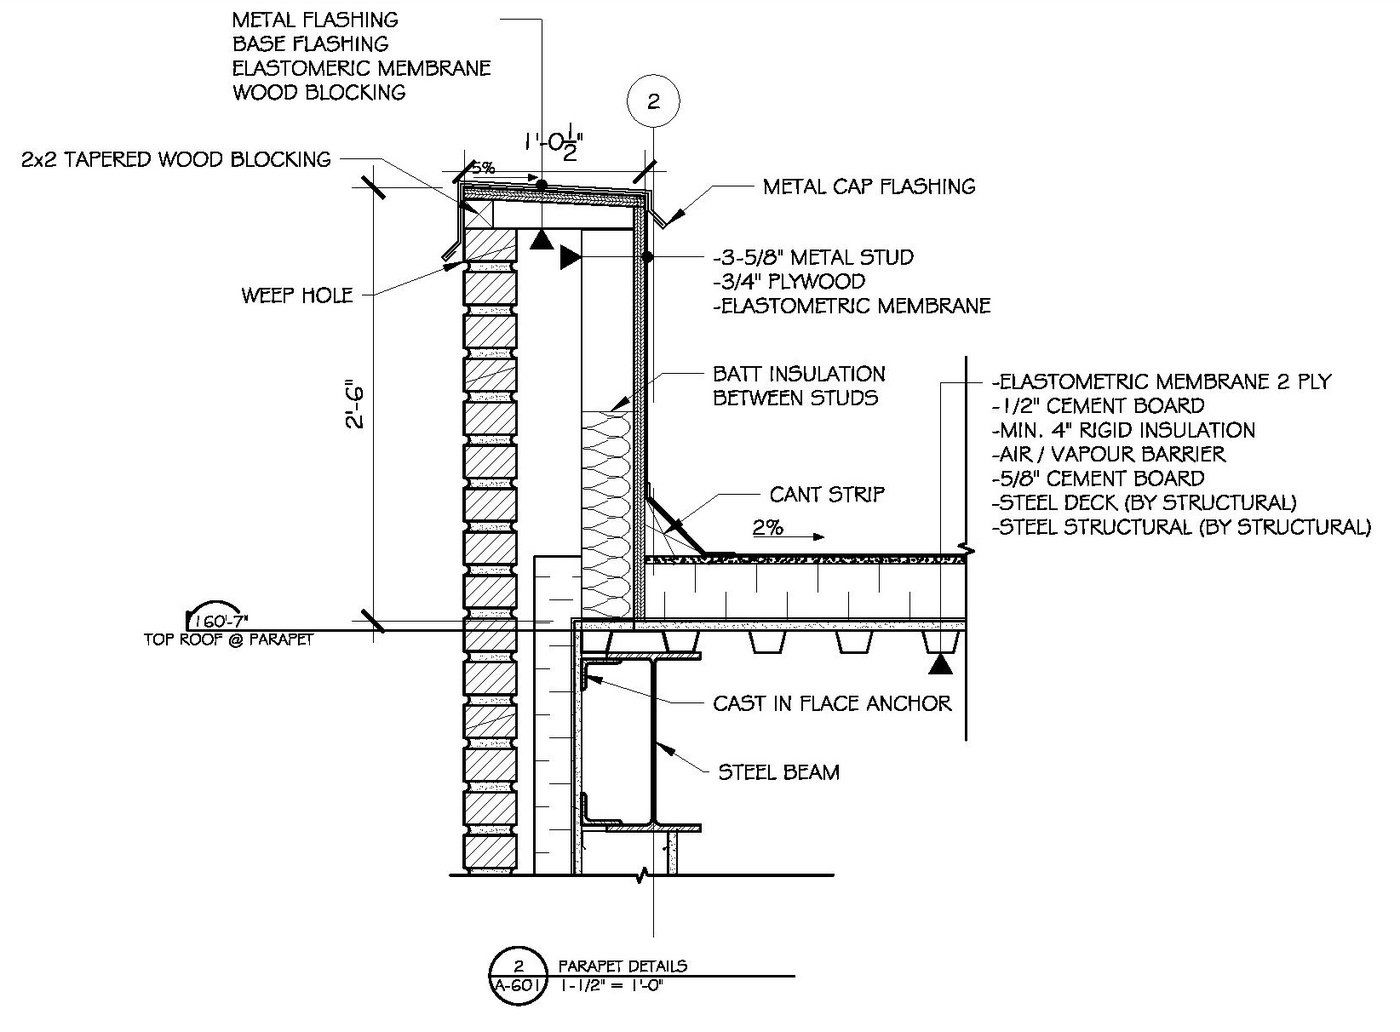 Commercial Building Plans By Raymond Alberga At Coroflot Com Commercial Building Plans Building Plans Ceiling Plan